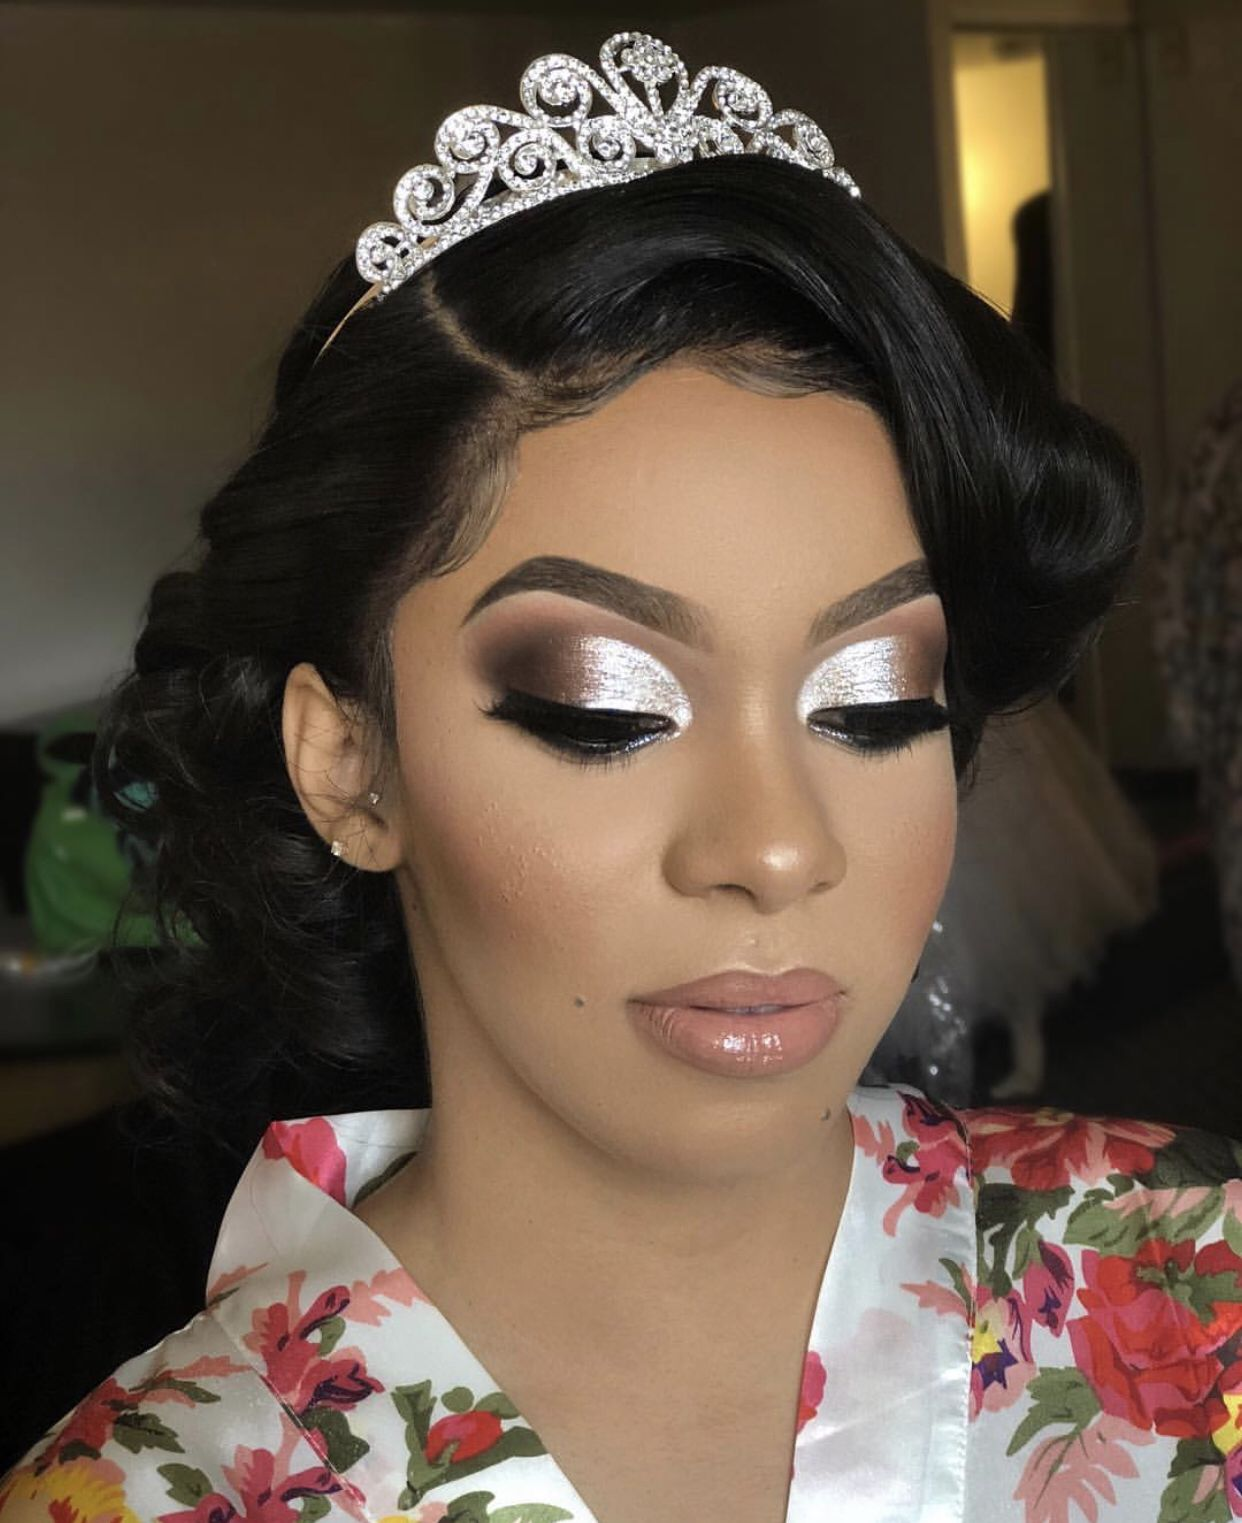 Pin by THE WAVE 🌊 on BEAUTY Photoshoot makeup, Black